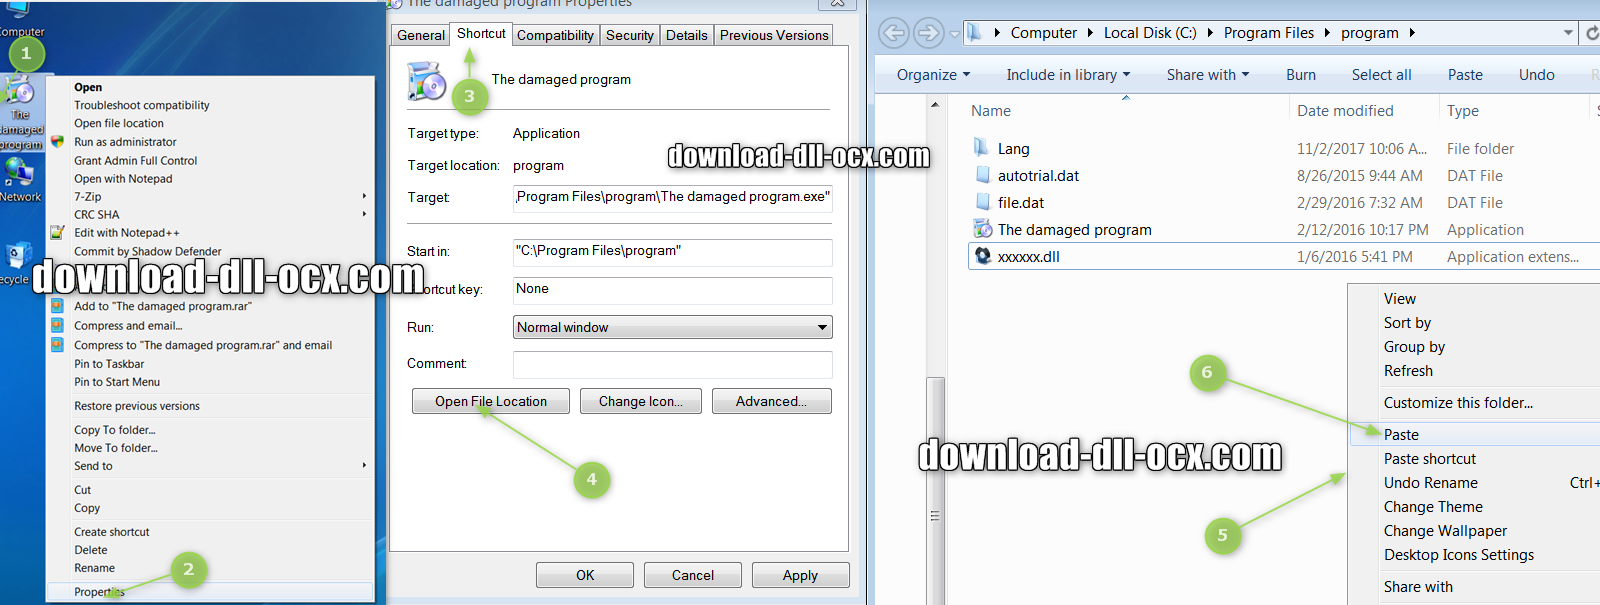 how to install Dsprov.dll file? for fix missing